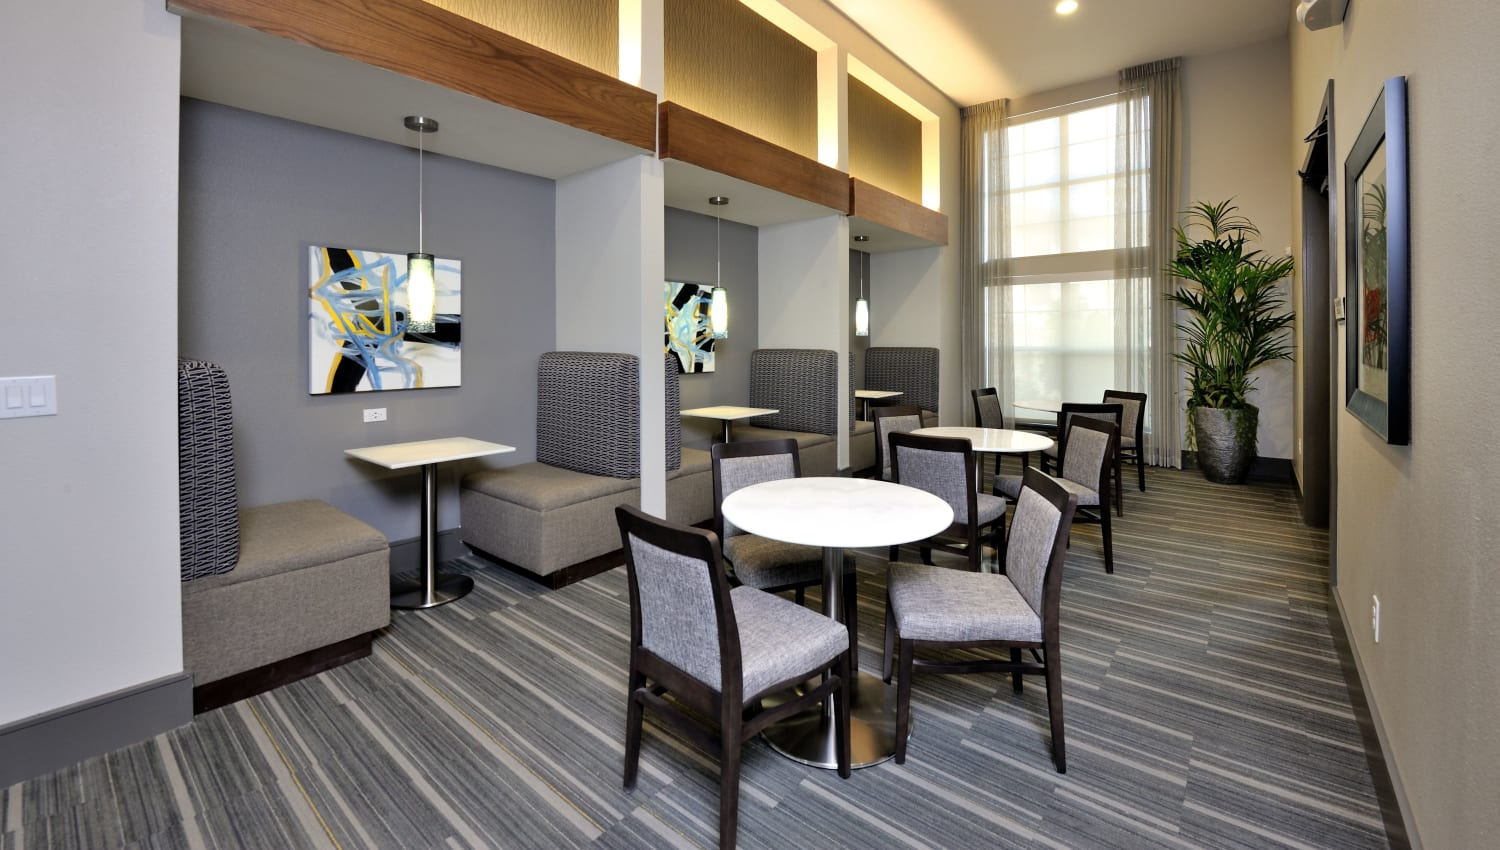 Meeting room with small booths at Olympus Falcon Landing in Katy, Texas